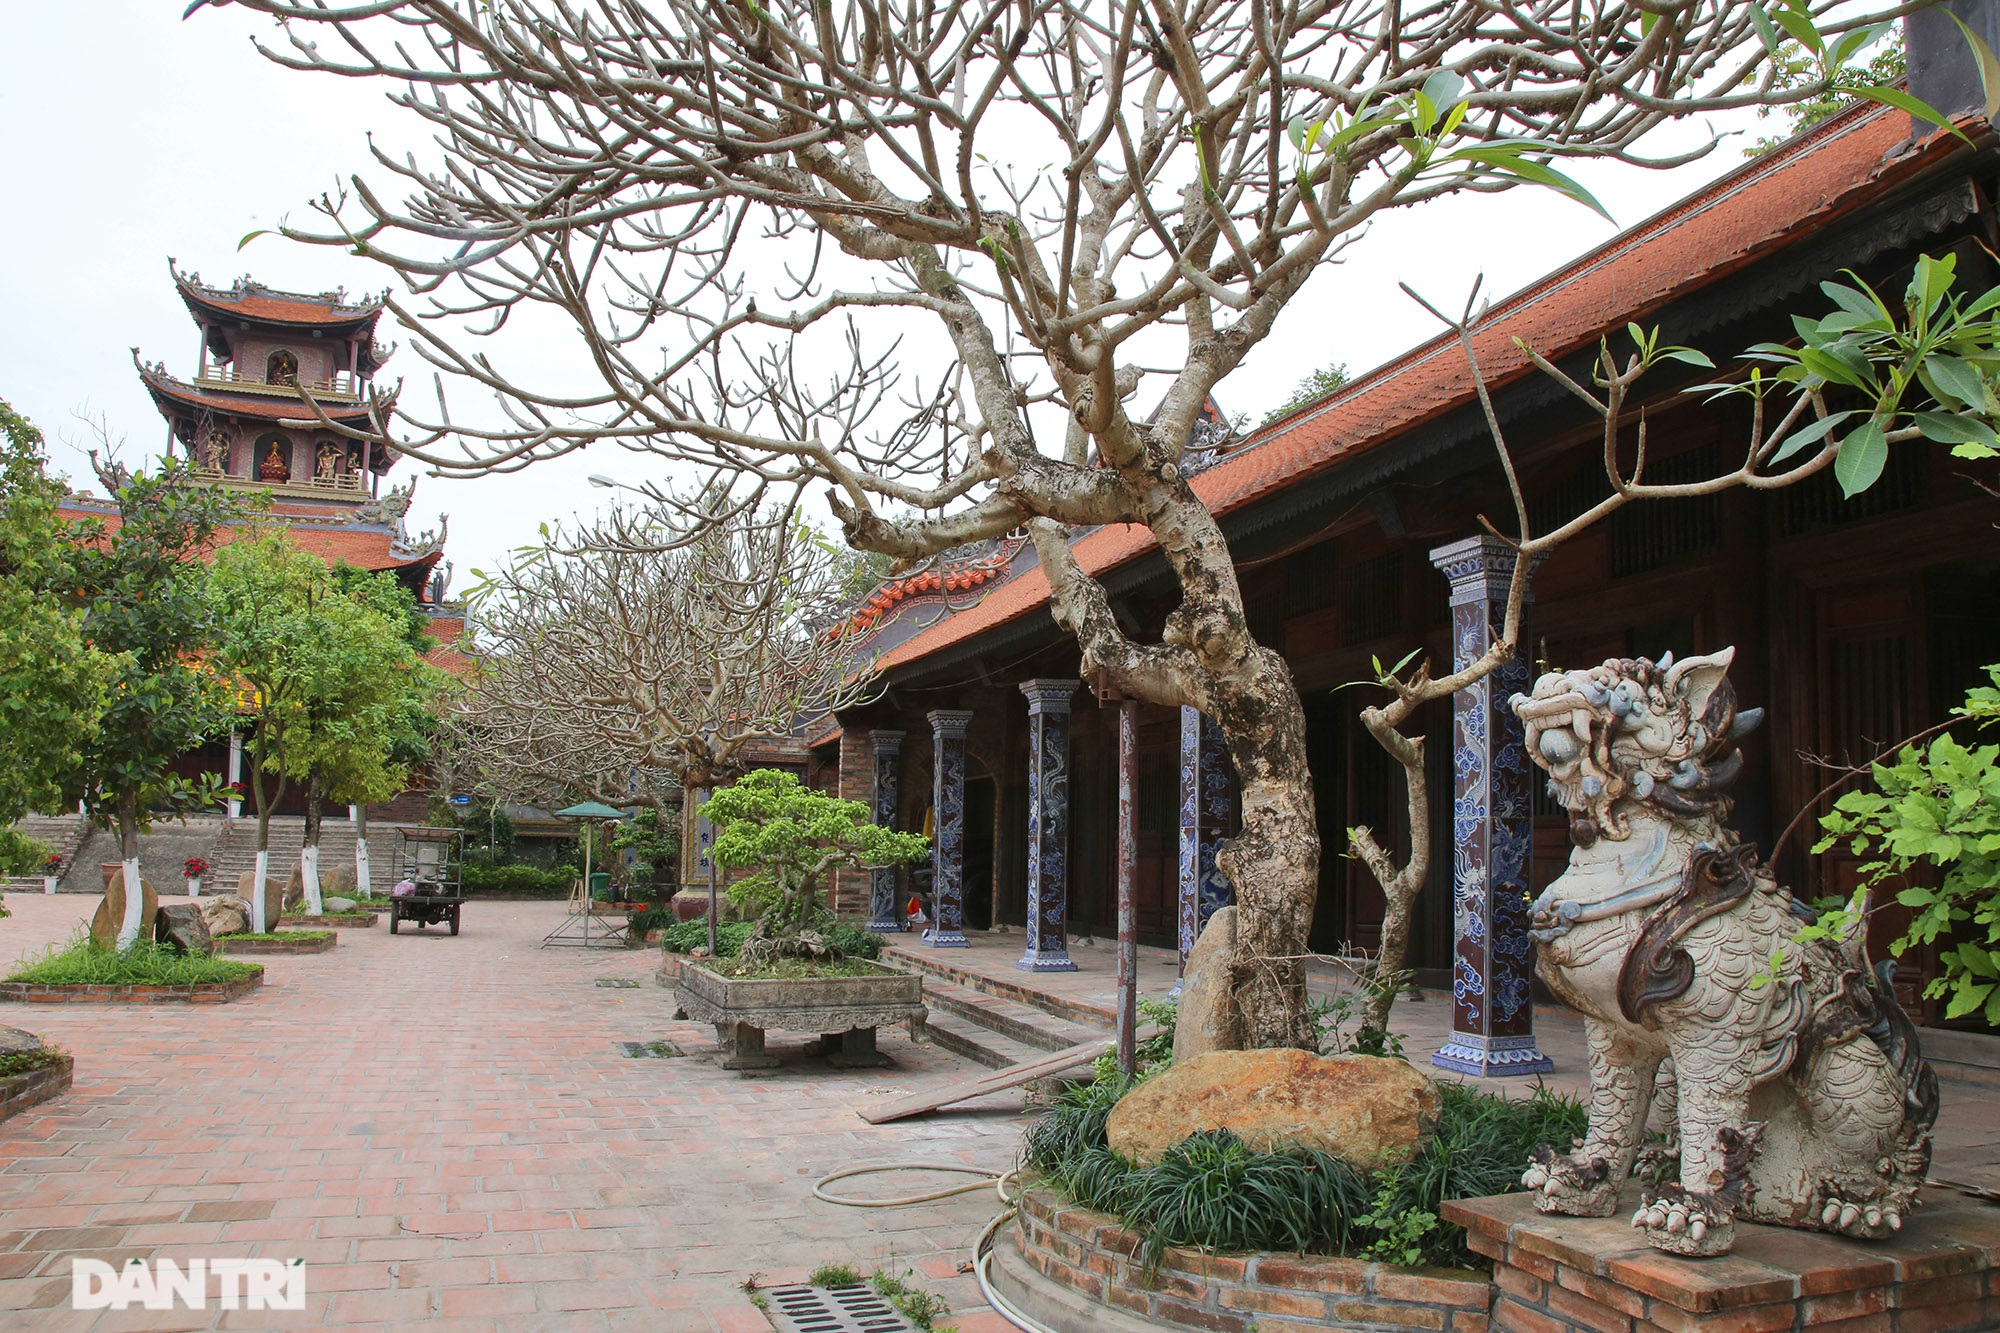 Ceramic pagoda built from tens of thousands of traditional handicrafts in Bat Trang - 1